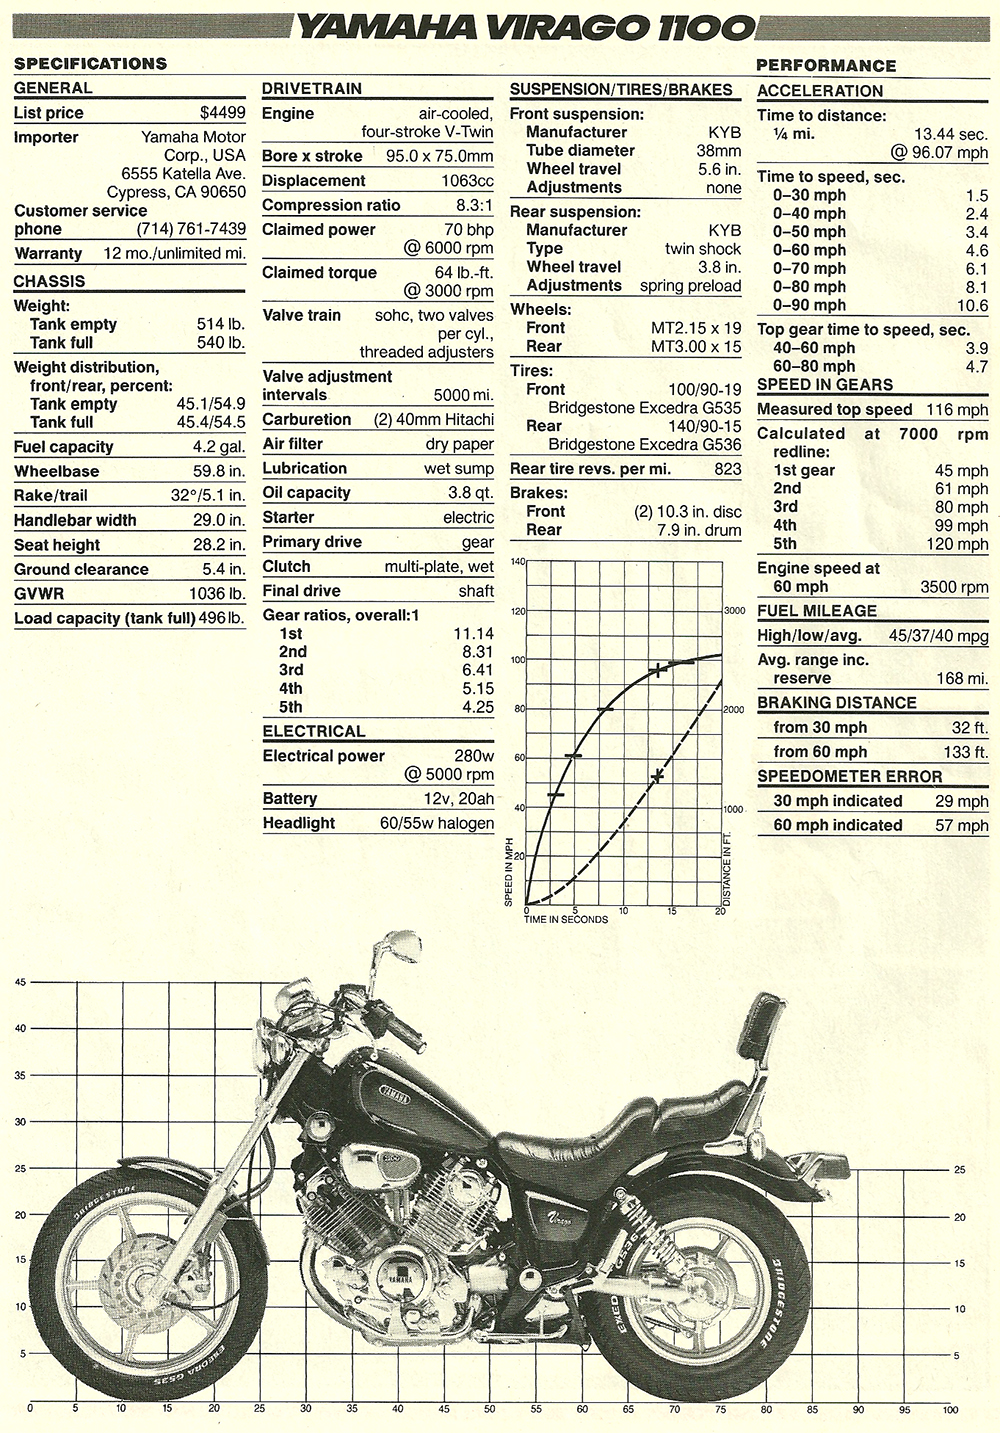 1986 Yamaha Virago 1100 road test 04.jpg